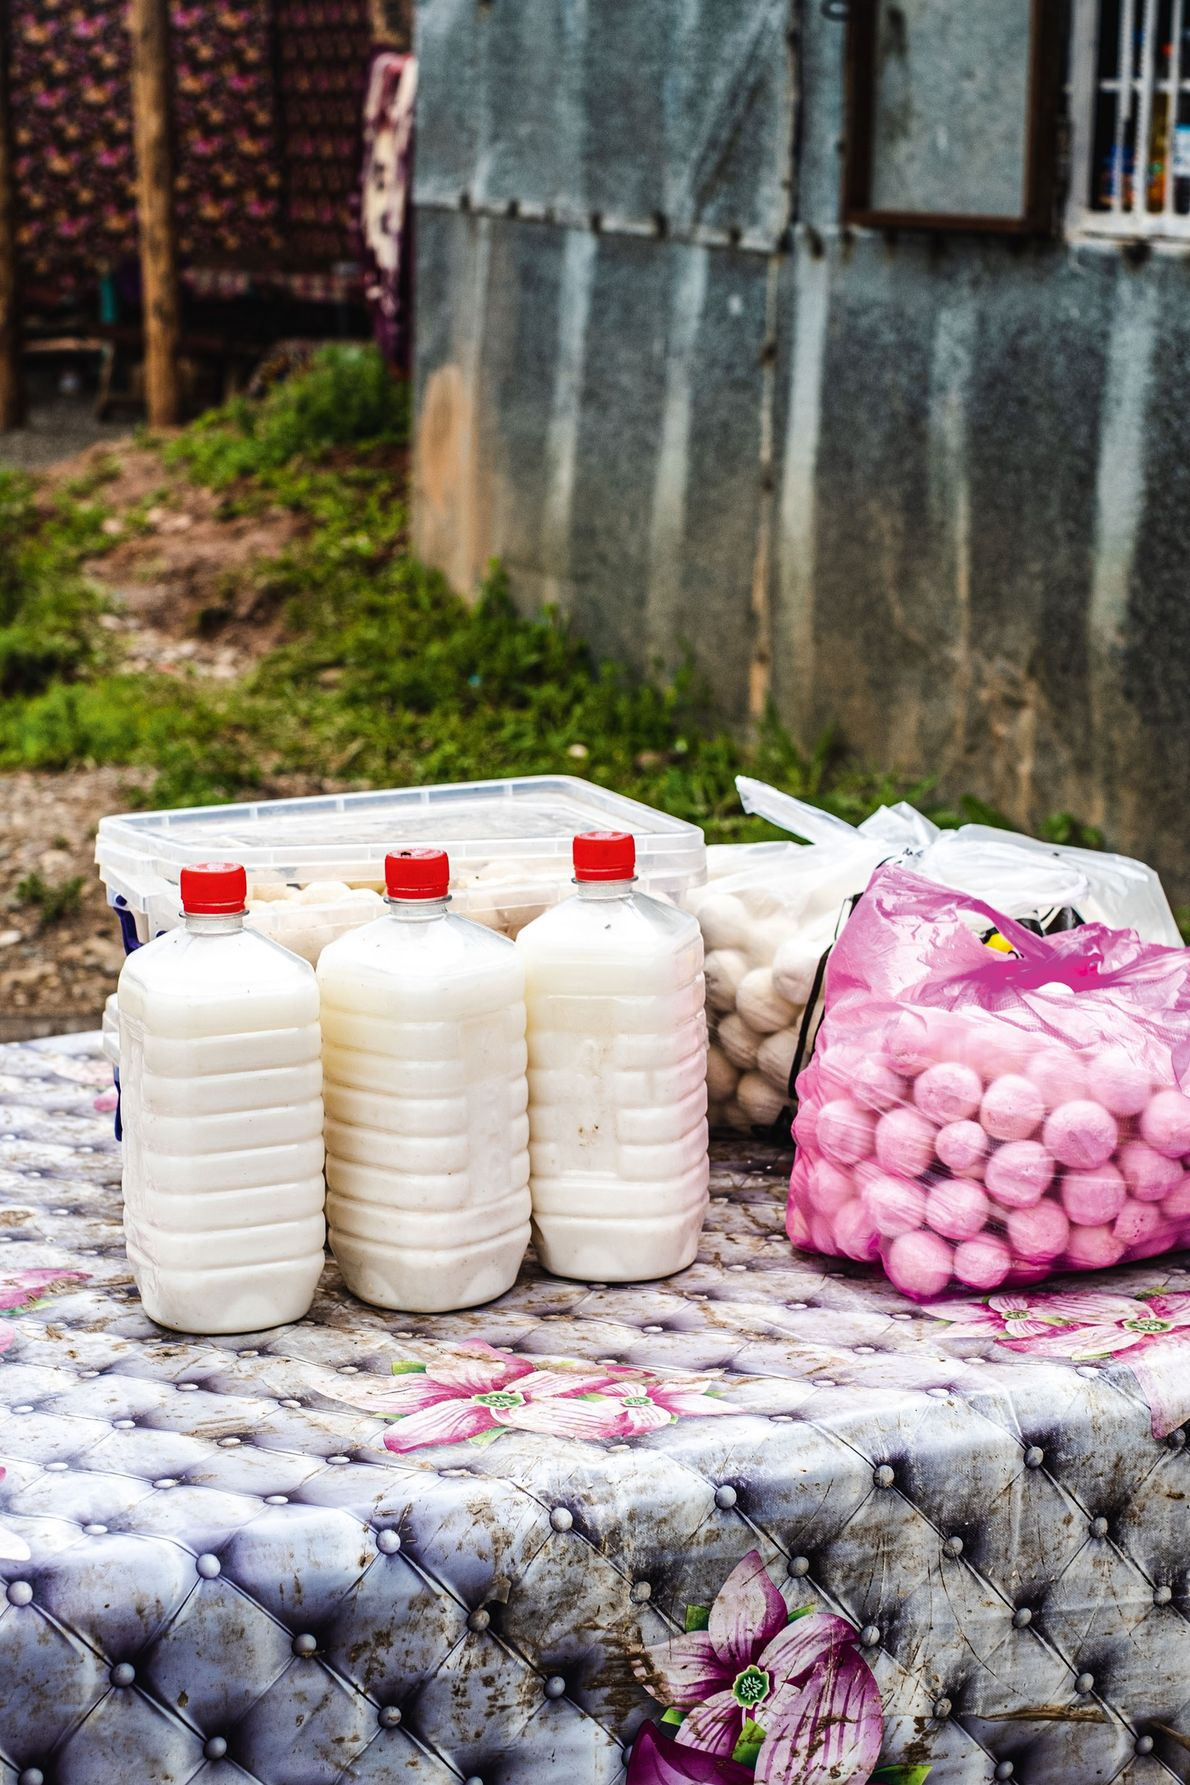 Fresh dairy products are a nomadic specialty and shepherds often sell homemade goods on roadside stalls. ...